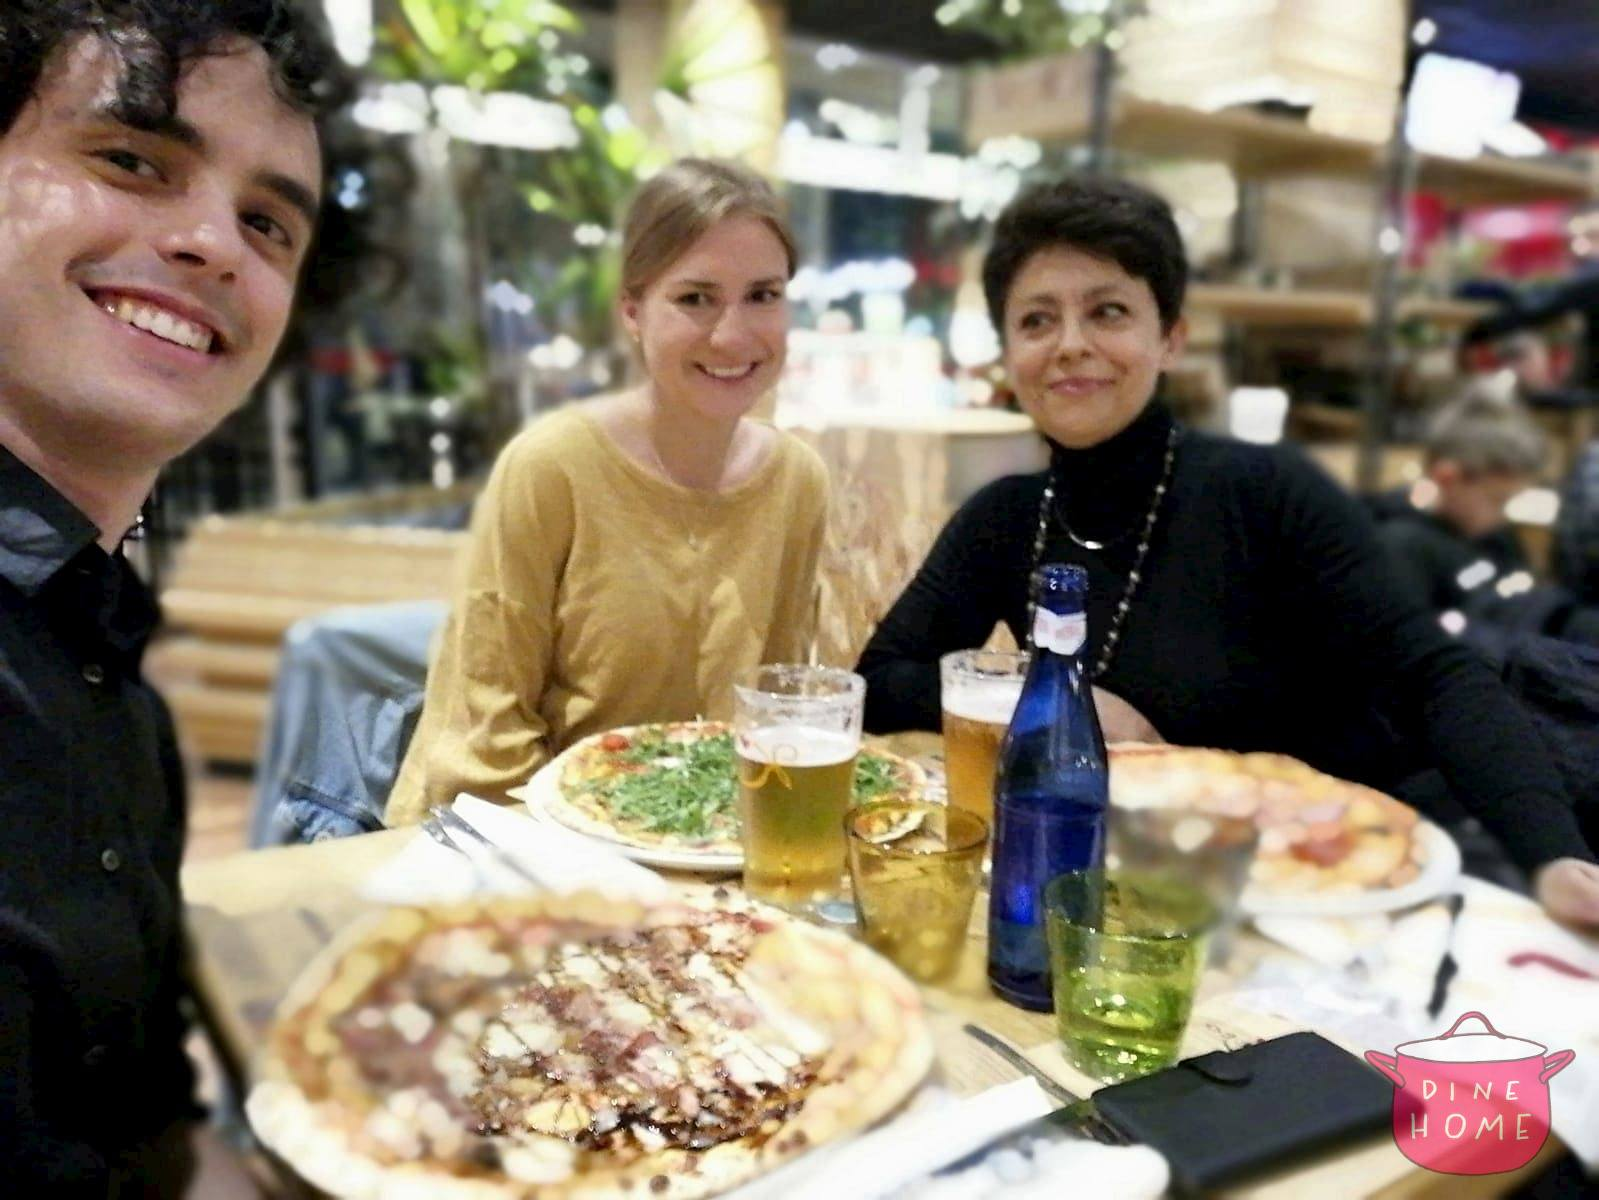 Magdalena, a student from Germany, having dinner with her Dinehome family.